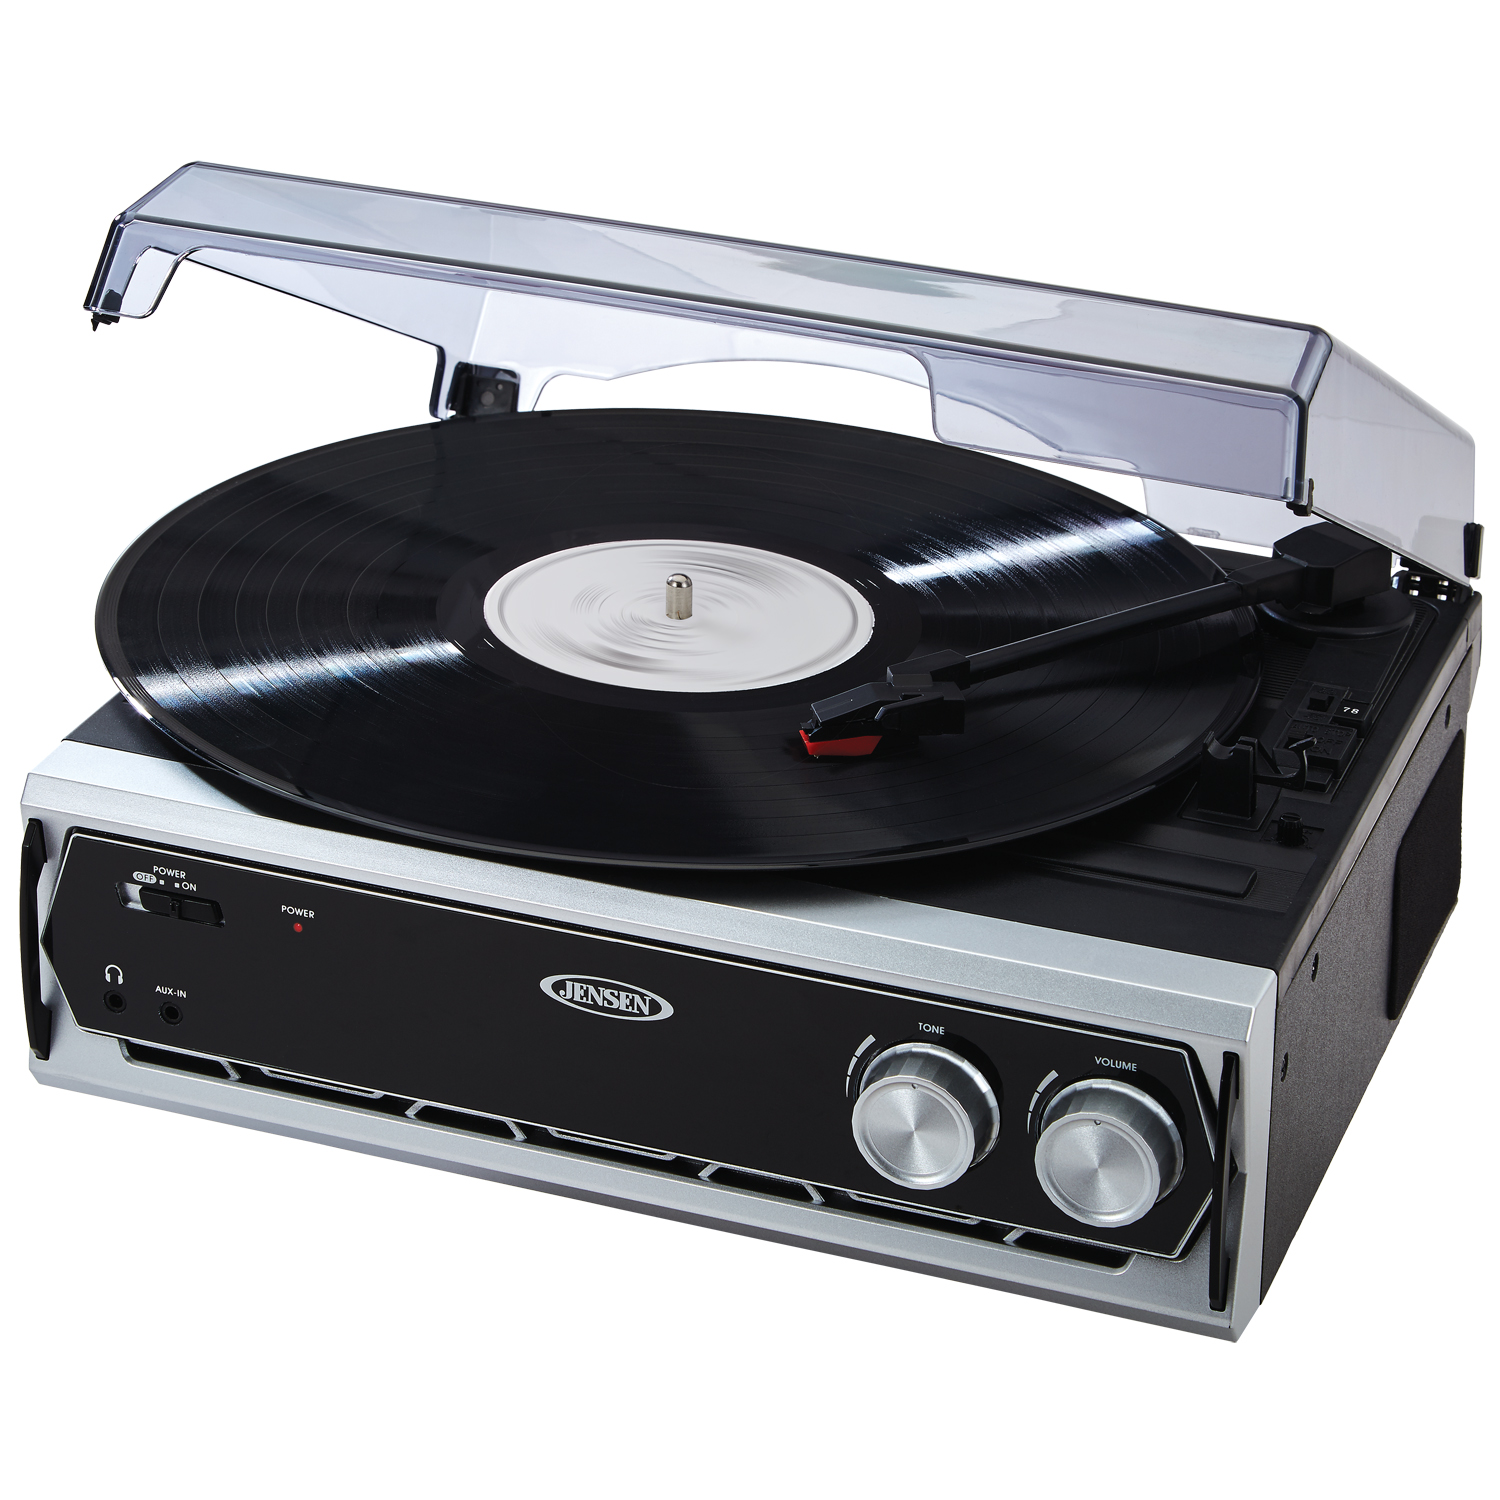 JENSEN JTA232 3-SPEED STEREO TURNTABLE WITH BUILT-IN SPEAKERS